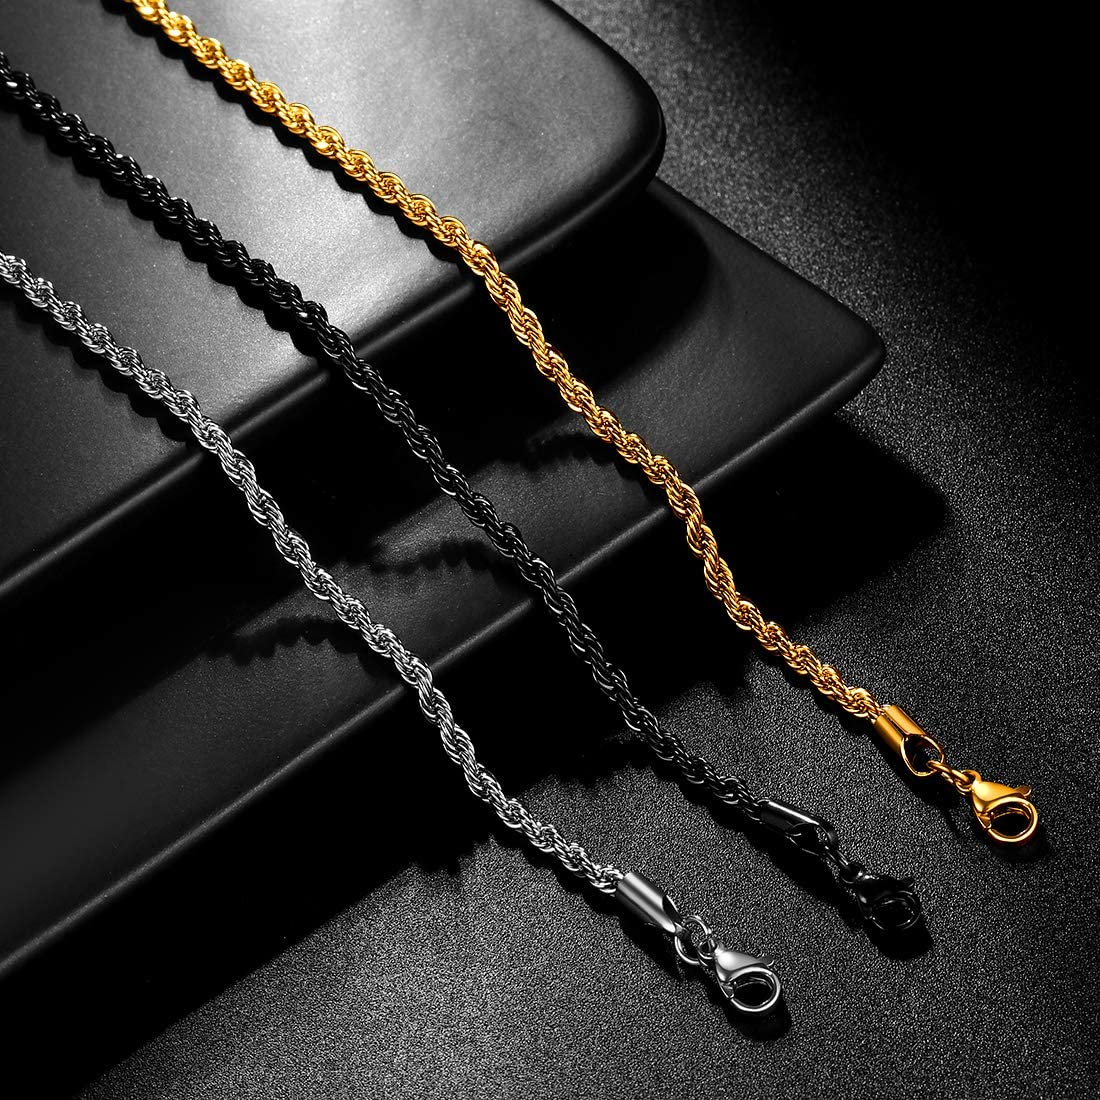 Twist Rope Chain Men 316 Stainless Steel 3mm/6mm Width Twisted Chains Mens 18 inches-30 inches Necklace Black Gun/18K Gold Plated Hip-Hop Jewelry